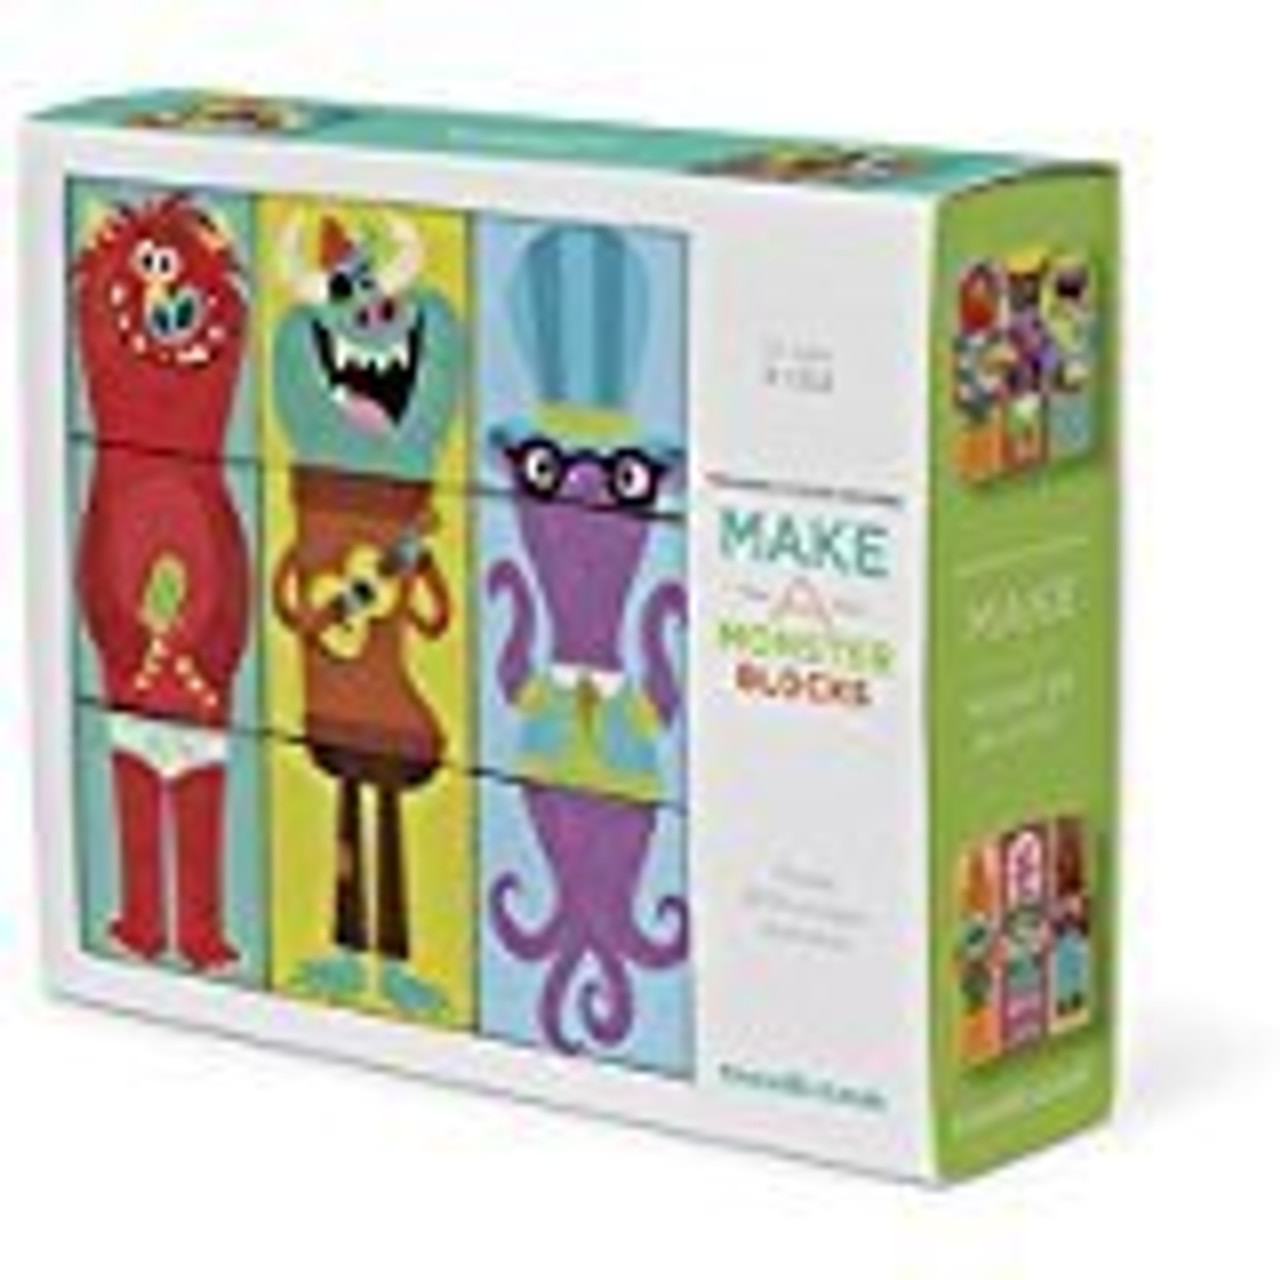 MAKE A MONSTER PUZZLE BLOCKS